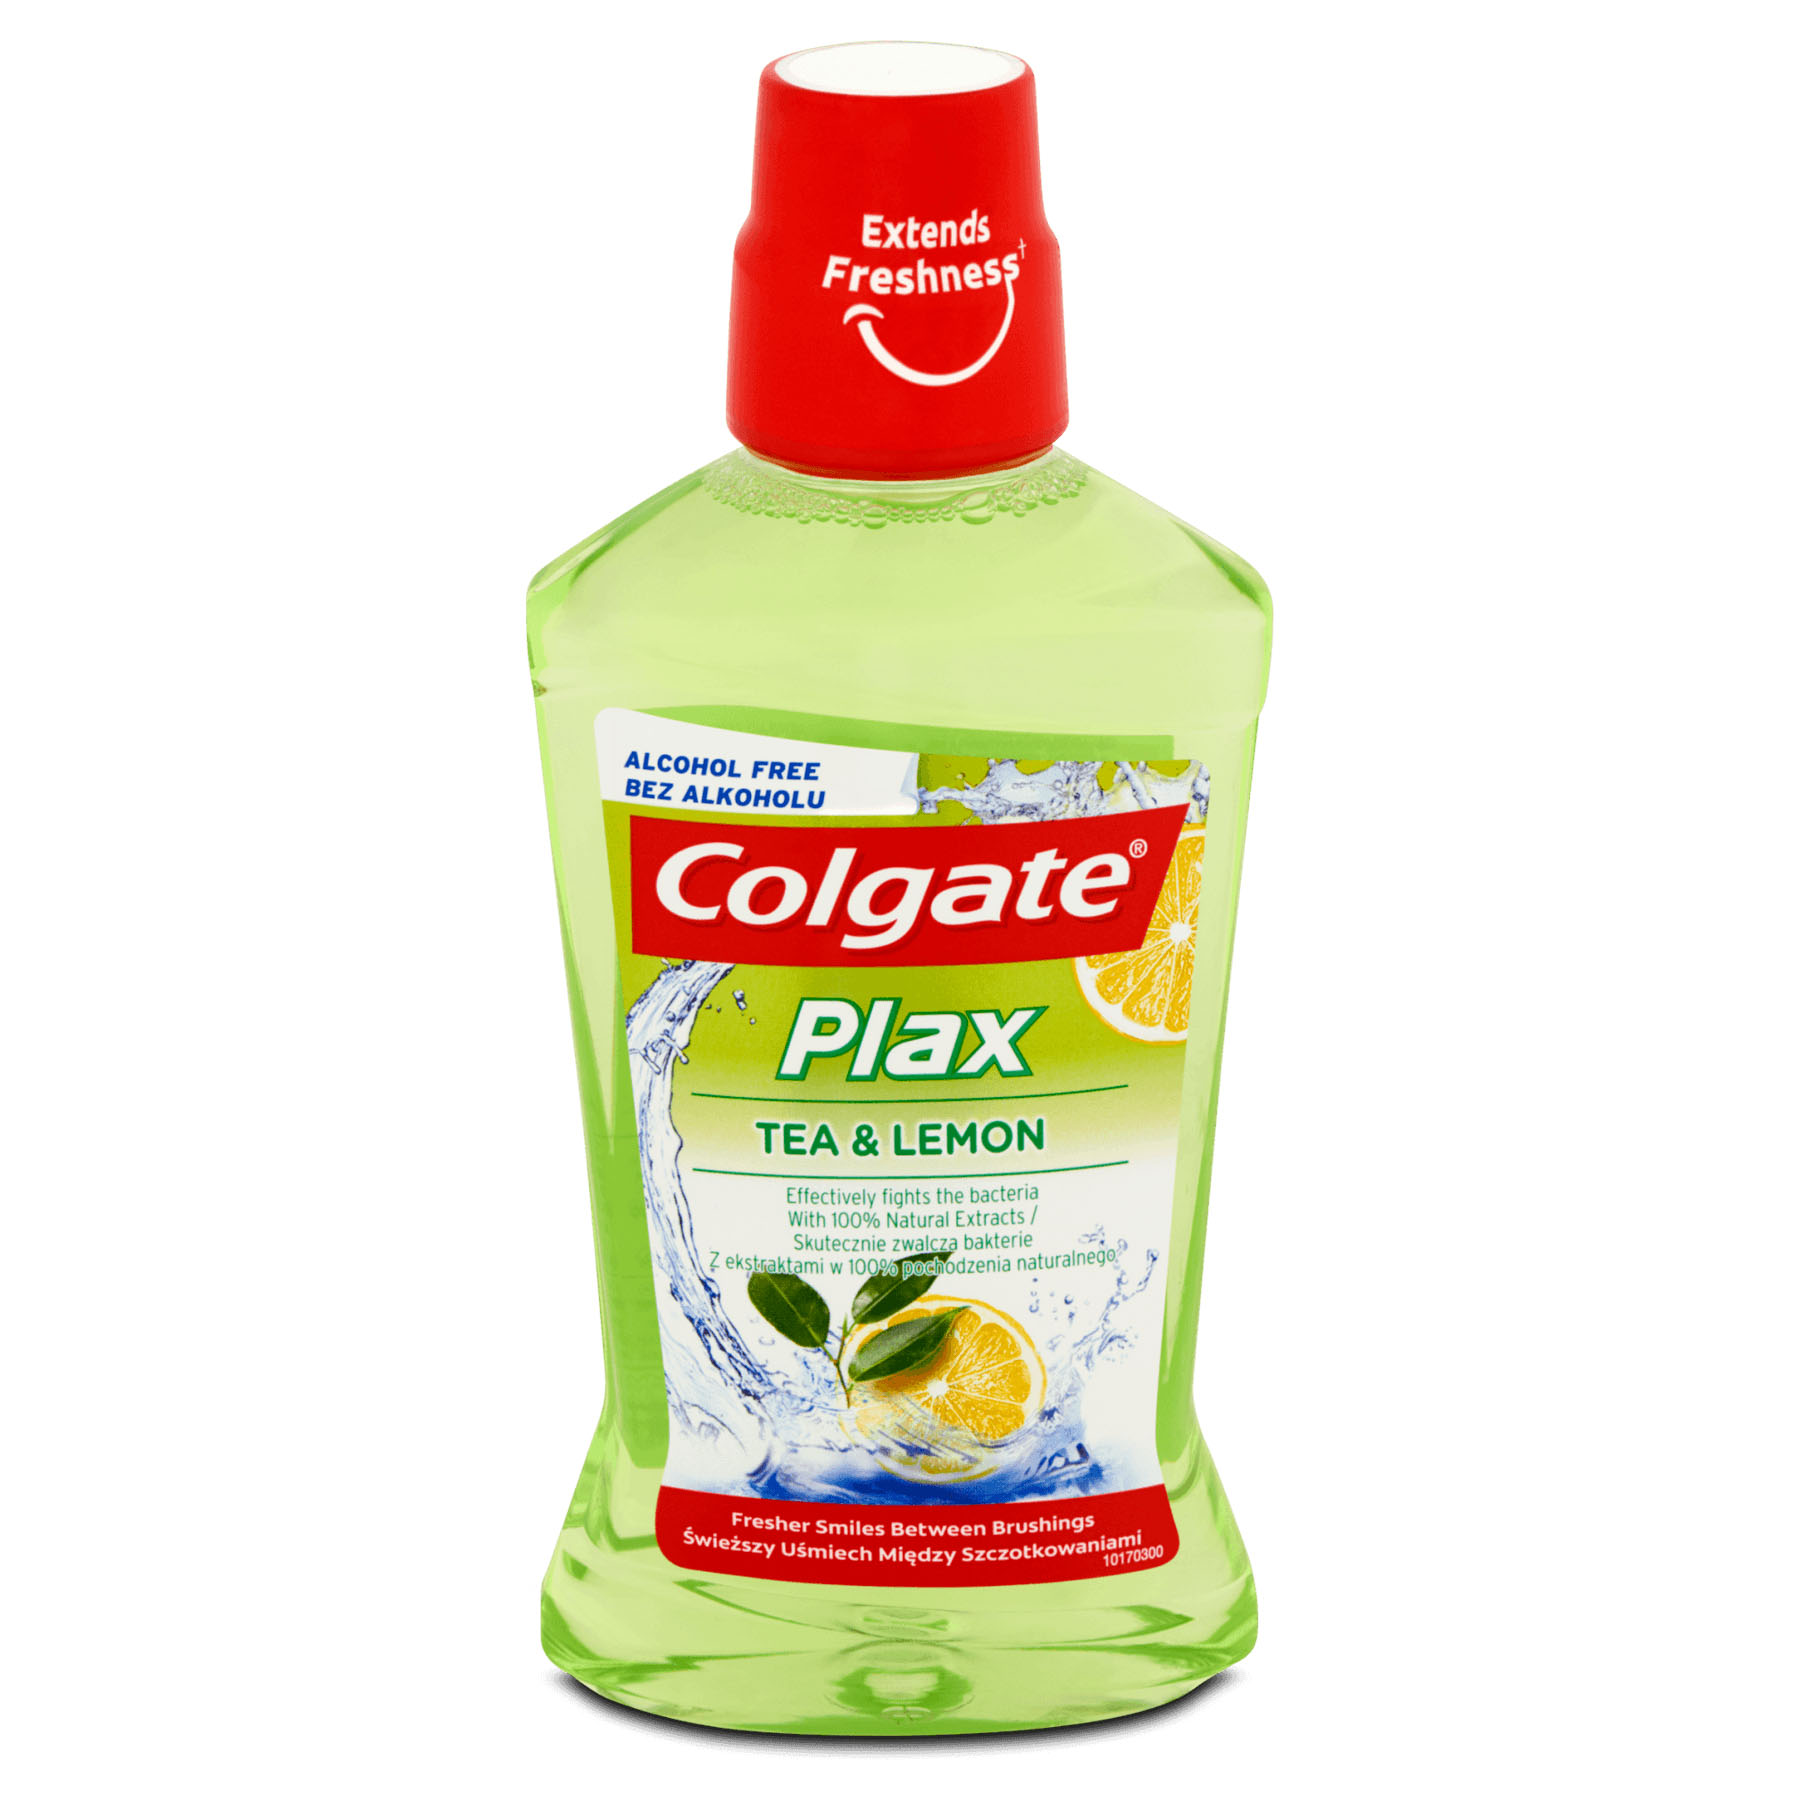 Colgate Plax Plax Tea & Lemon ústní voda 500 ml